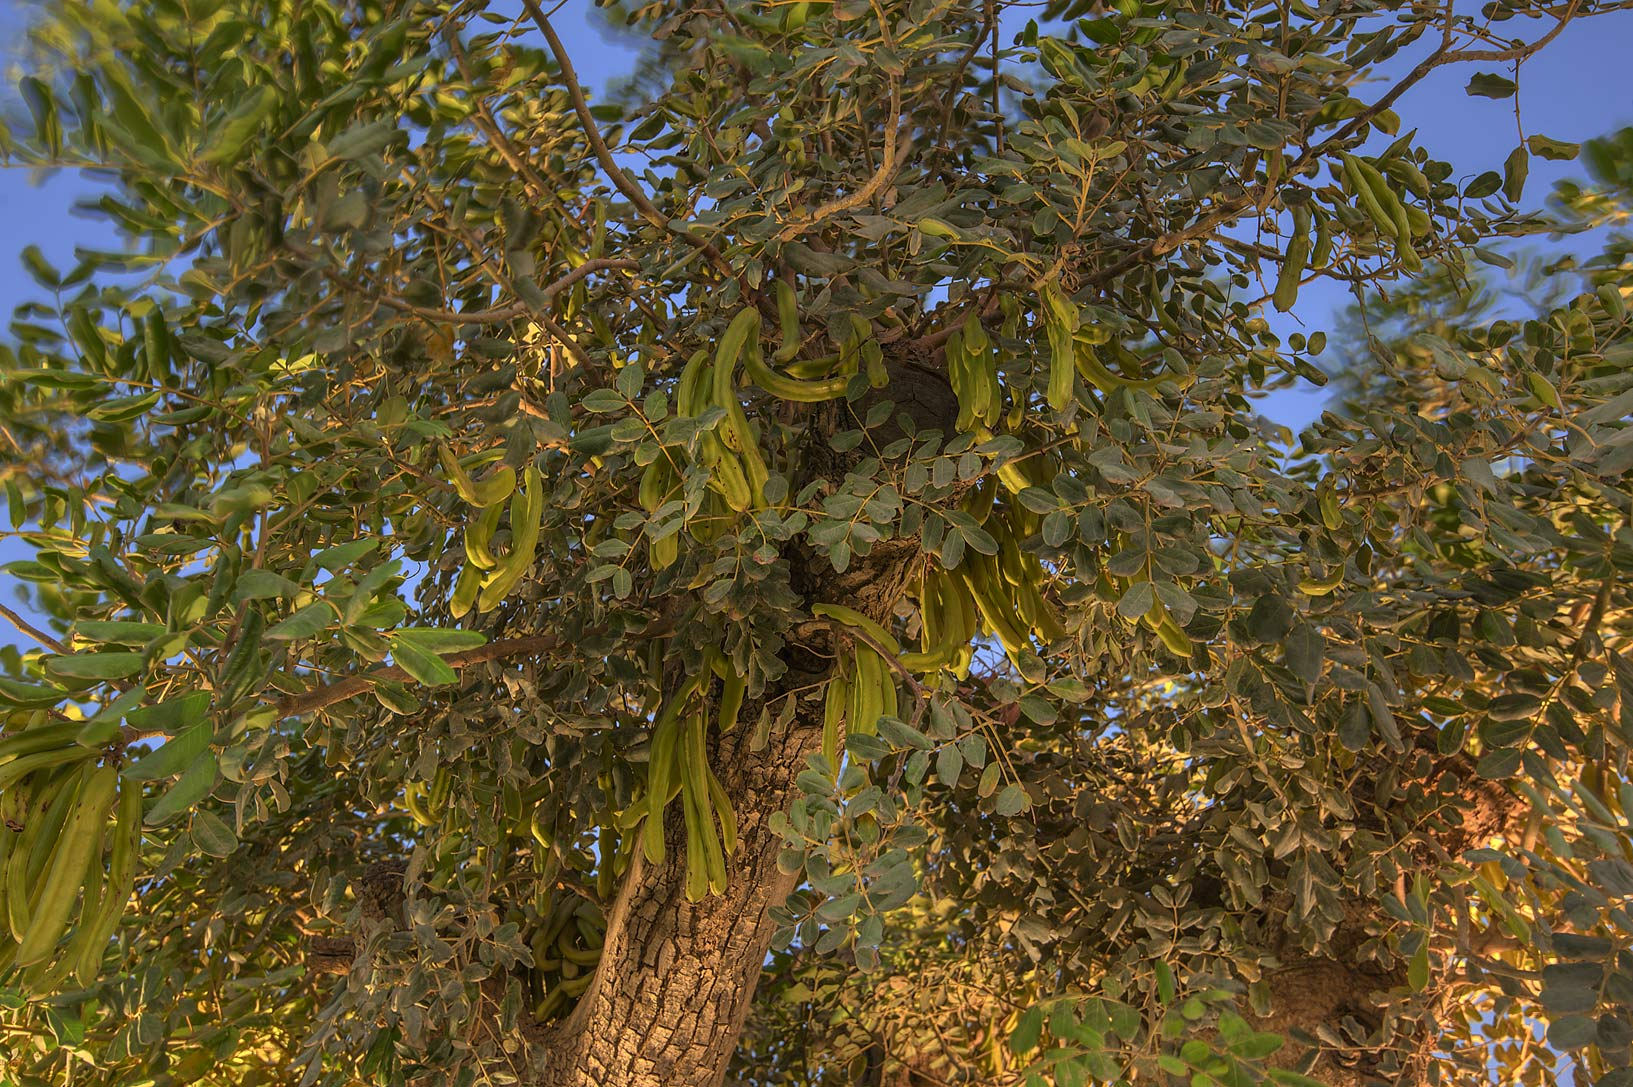 Carob tree (Ceratonia siliqua) with fruits in Aspire Park. Doha, Qatar